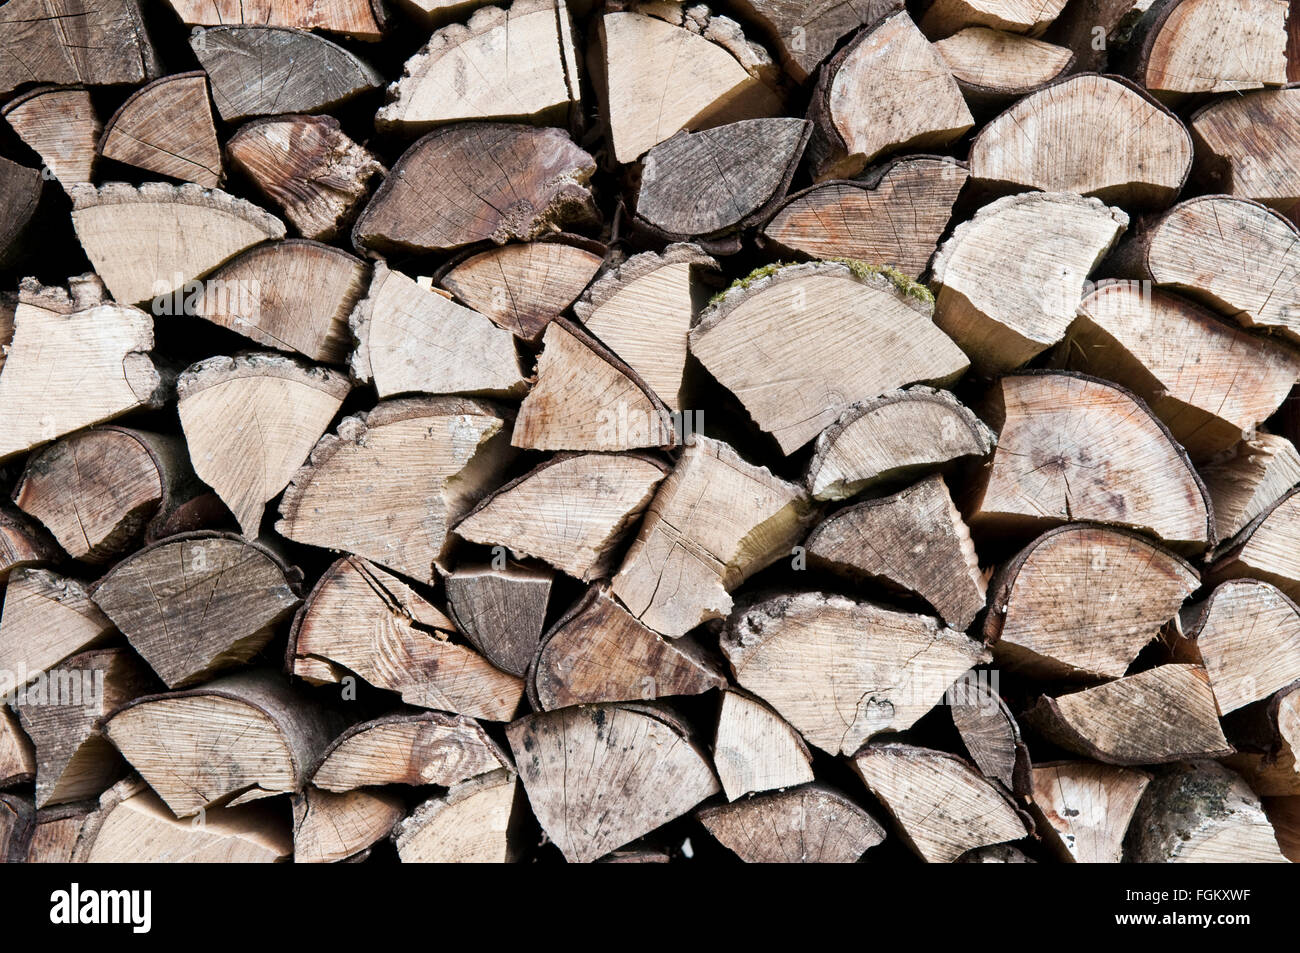 End on view of a pile of roughly chopped wooden logs - Stock Image